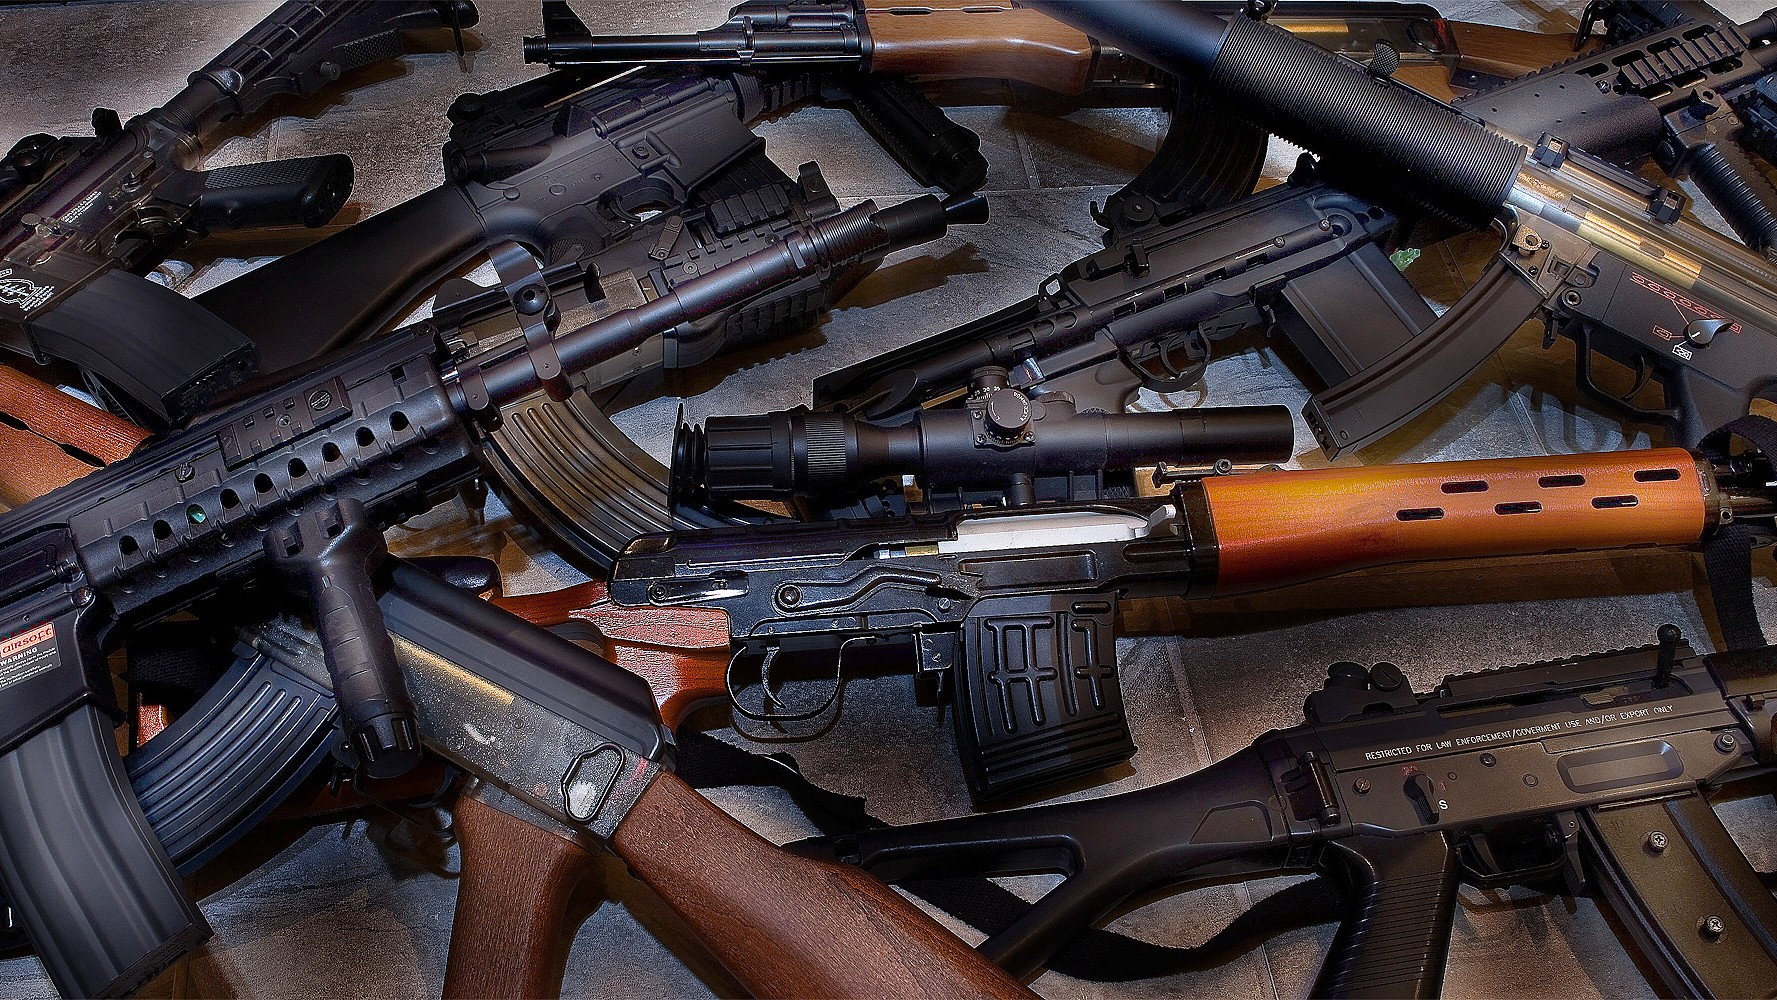 The UK is Going to Send Billions in Arms Exports to Countries on the Human Rights Blacklist